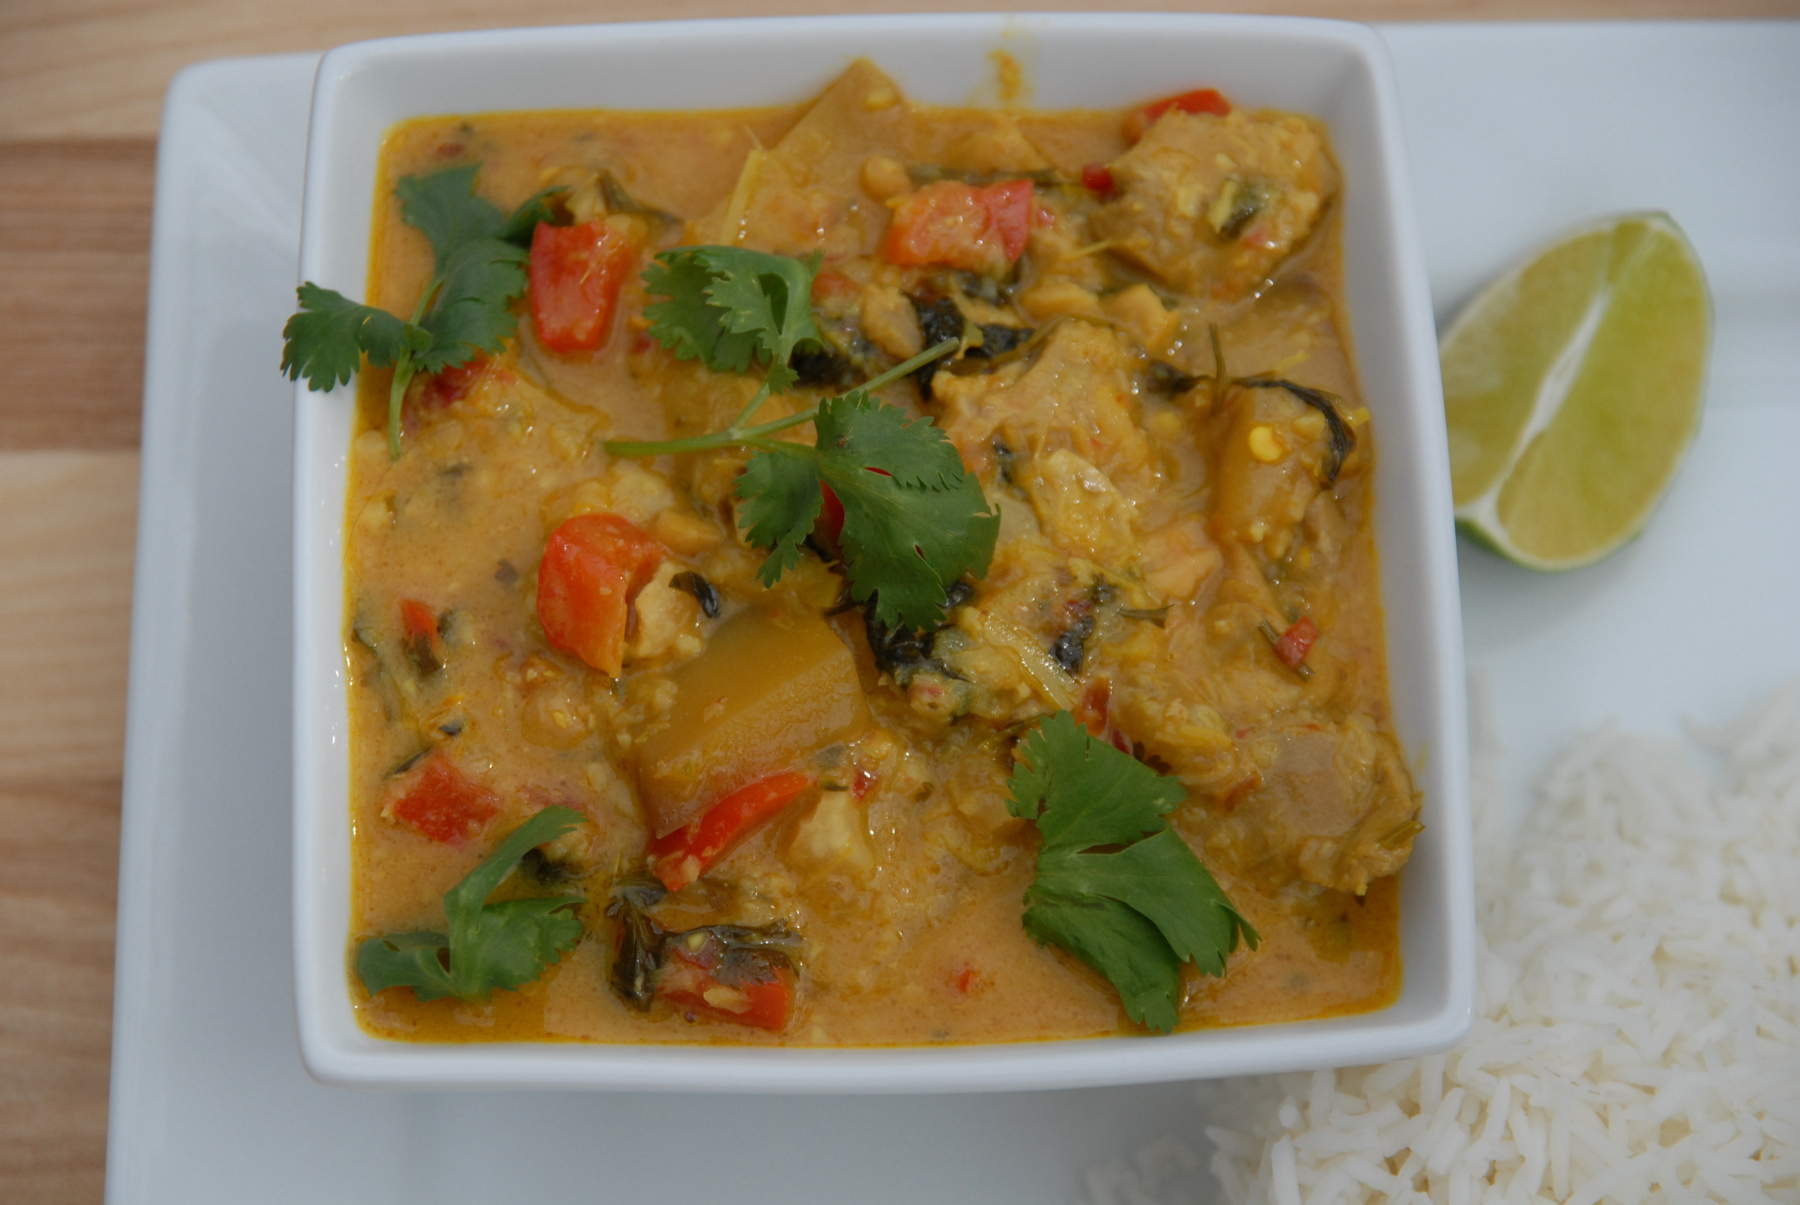 Thai mango curry with chicken - made from scratch